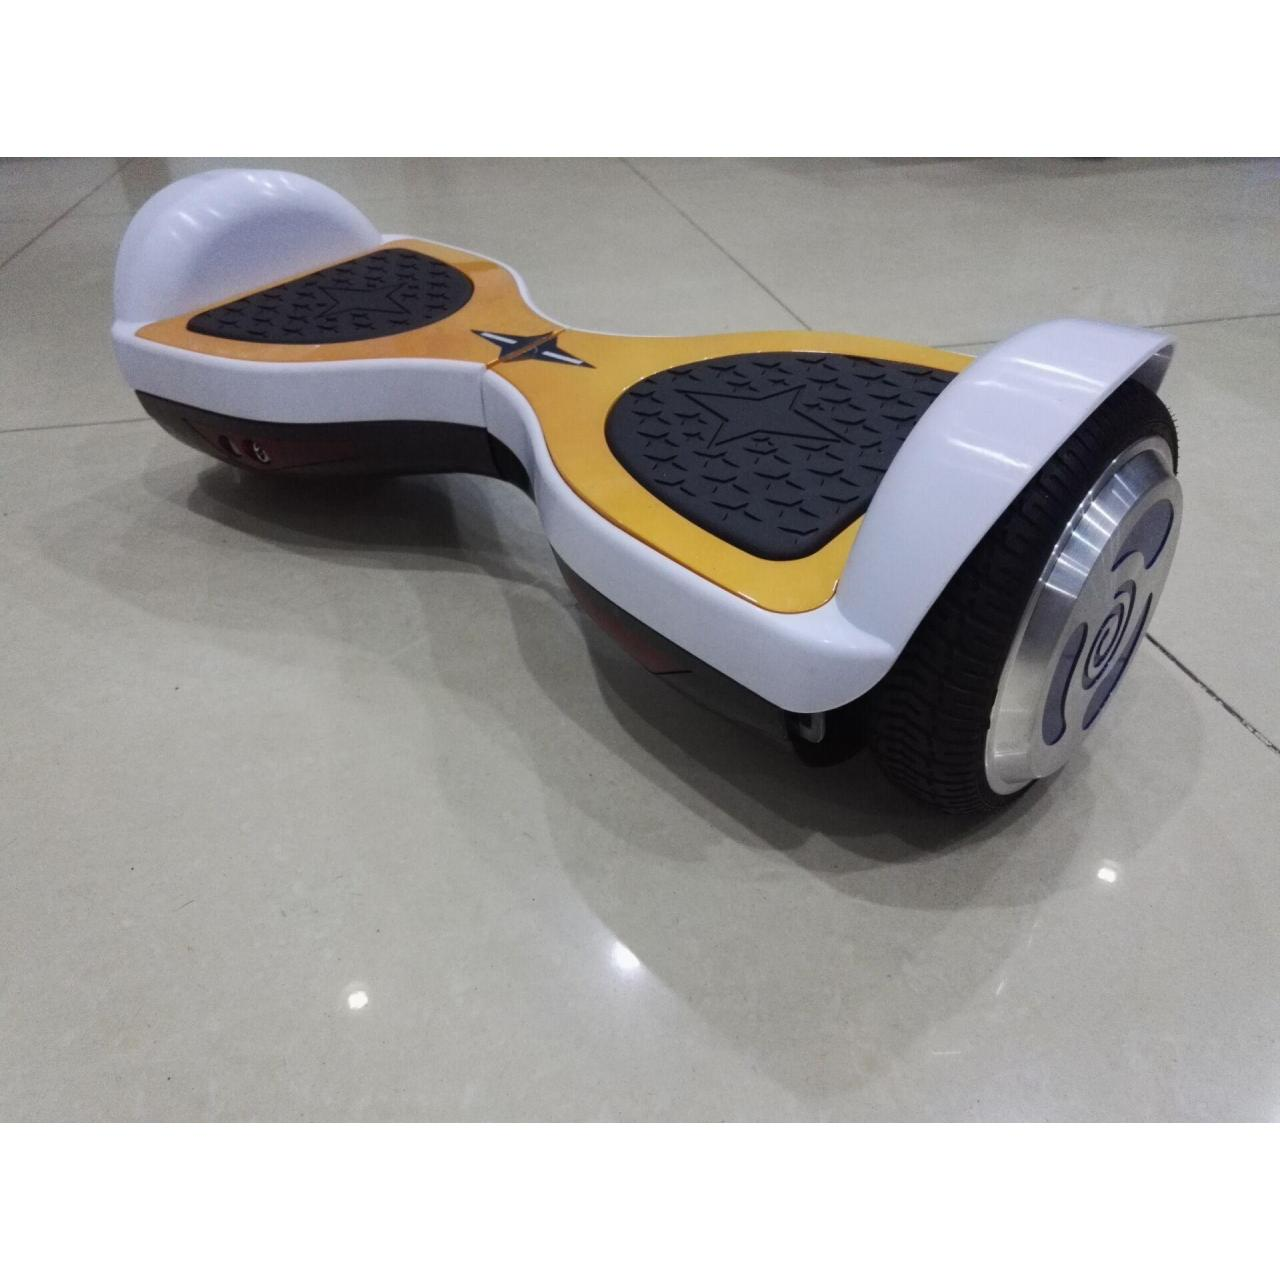 Self balancing E-scooter Self balancing electric scooter